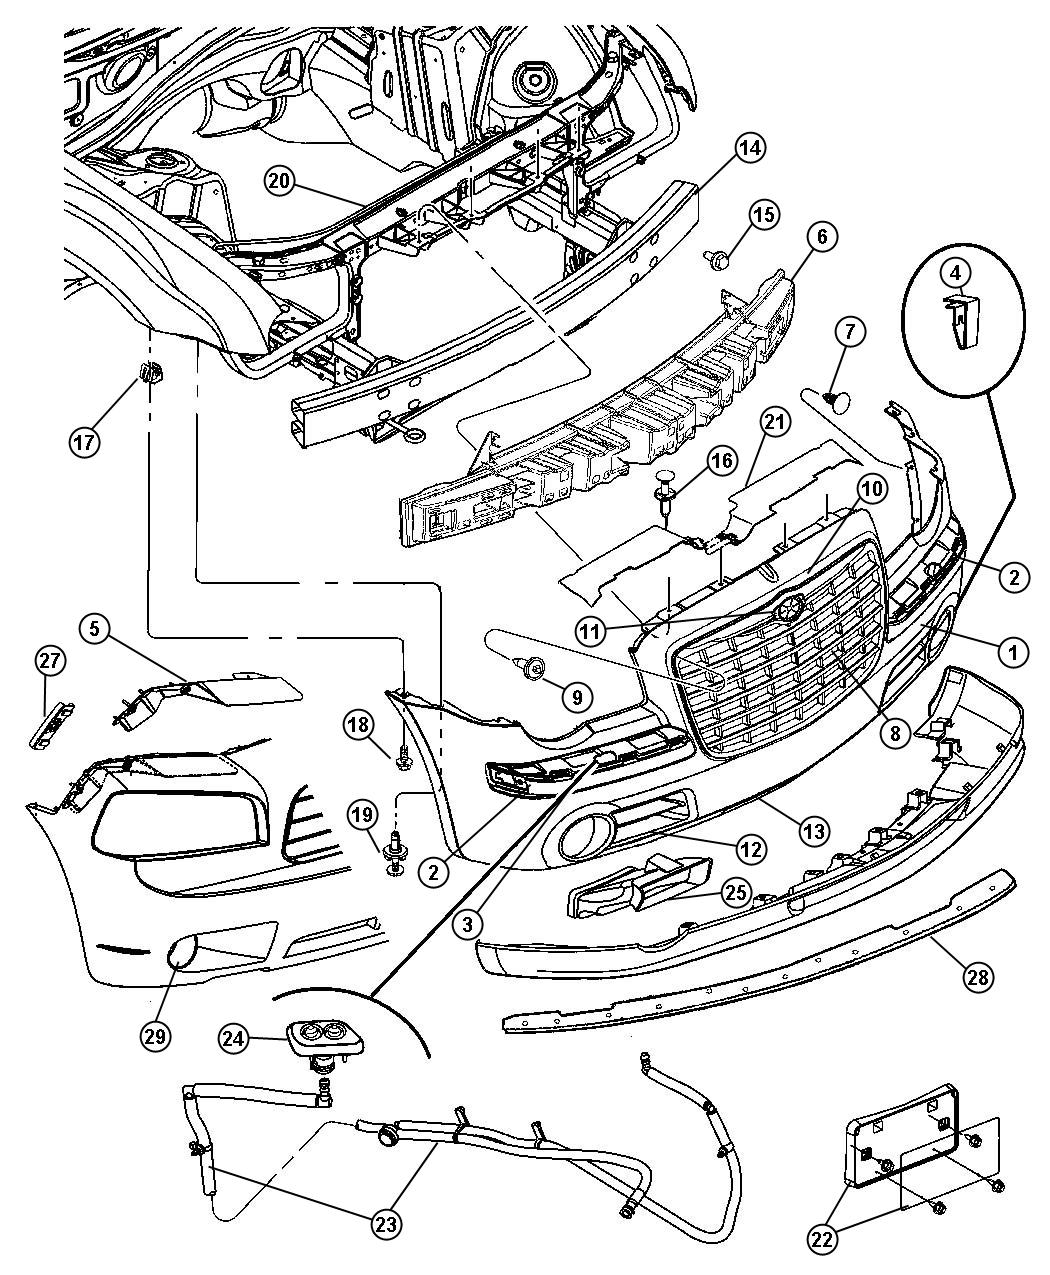 chrysler town and country parts diagram 2007 holden rodeo stereo wiring 2008 transmission